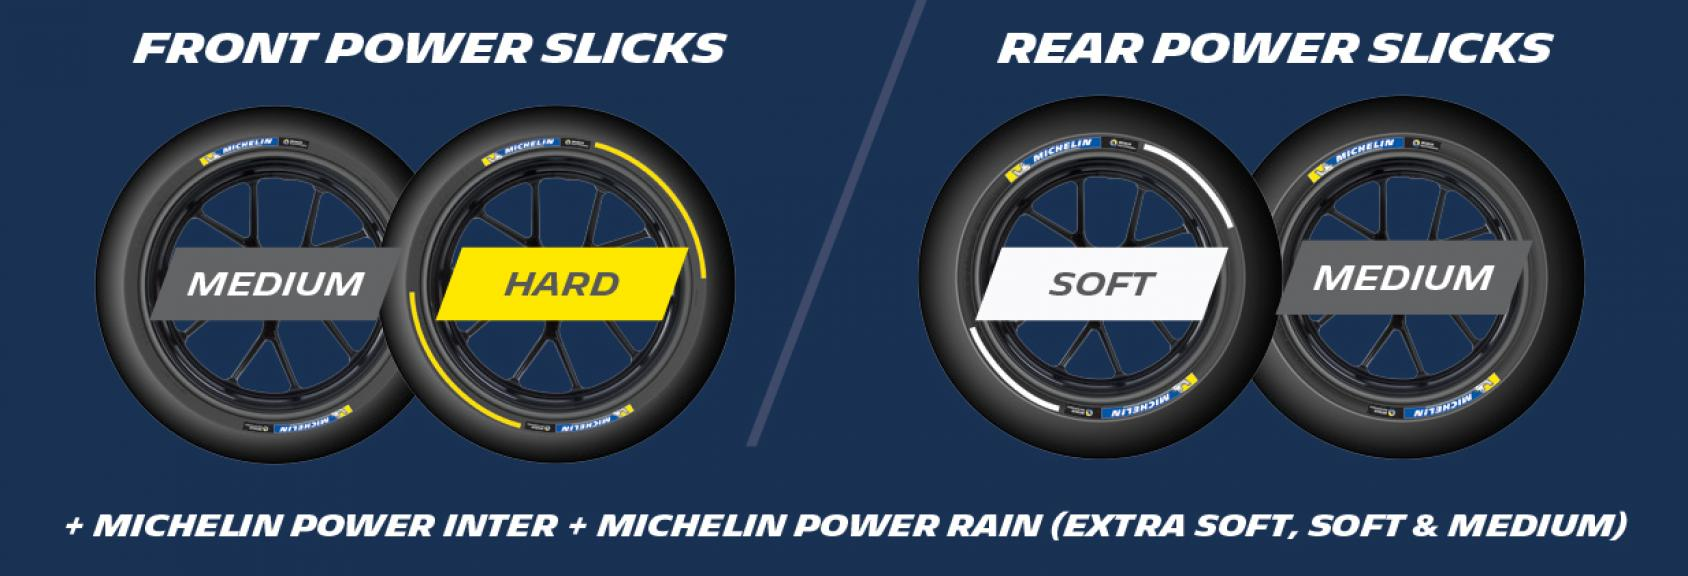 Michelin_English_Valencia